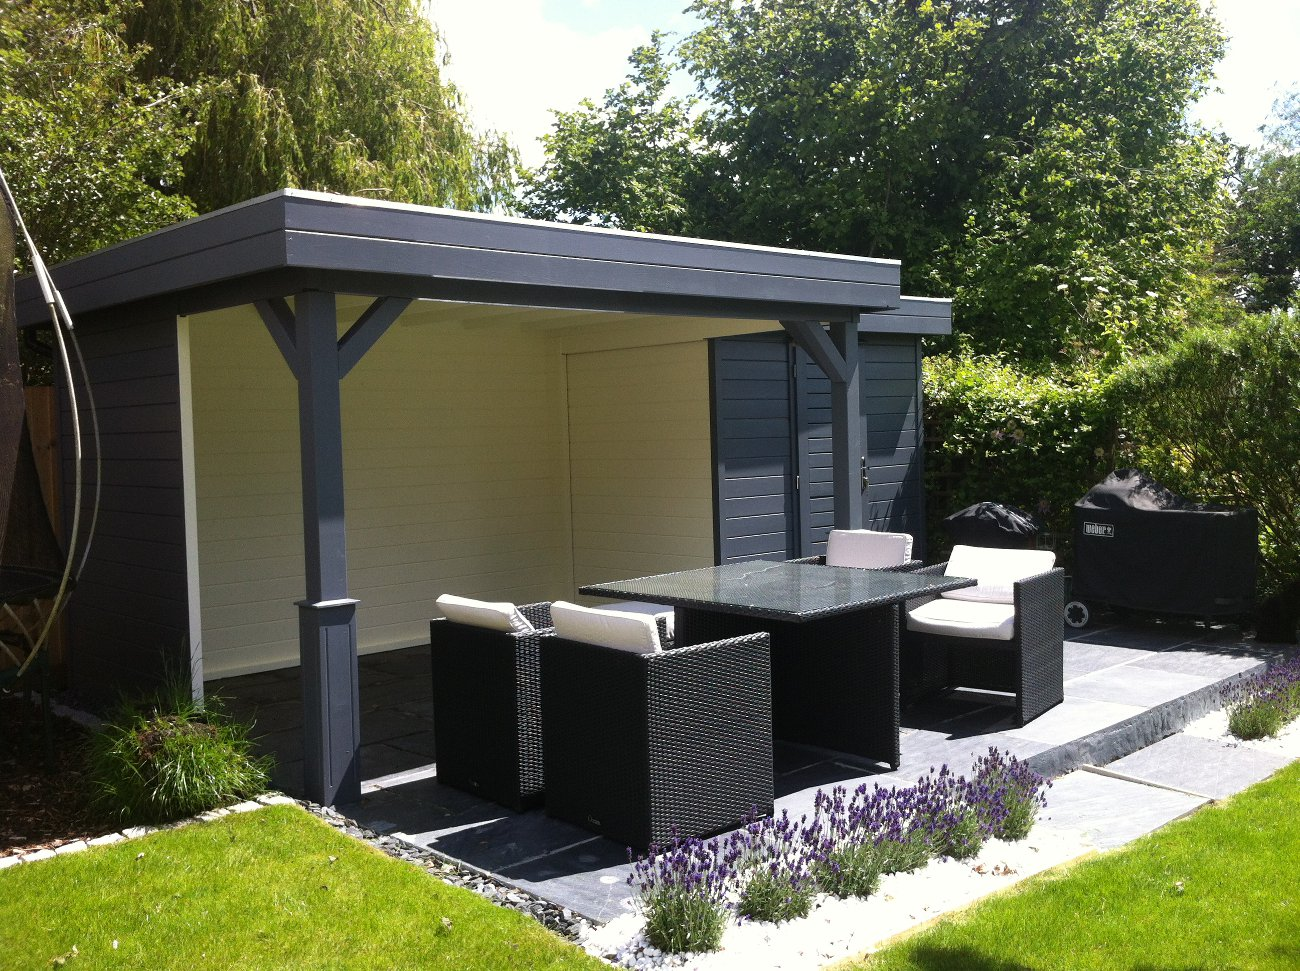 Garden Gazebos Top Ideas amp Inspiration For Outdoor Living